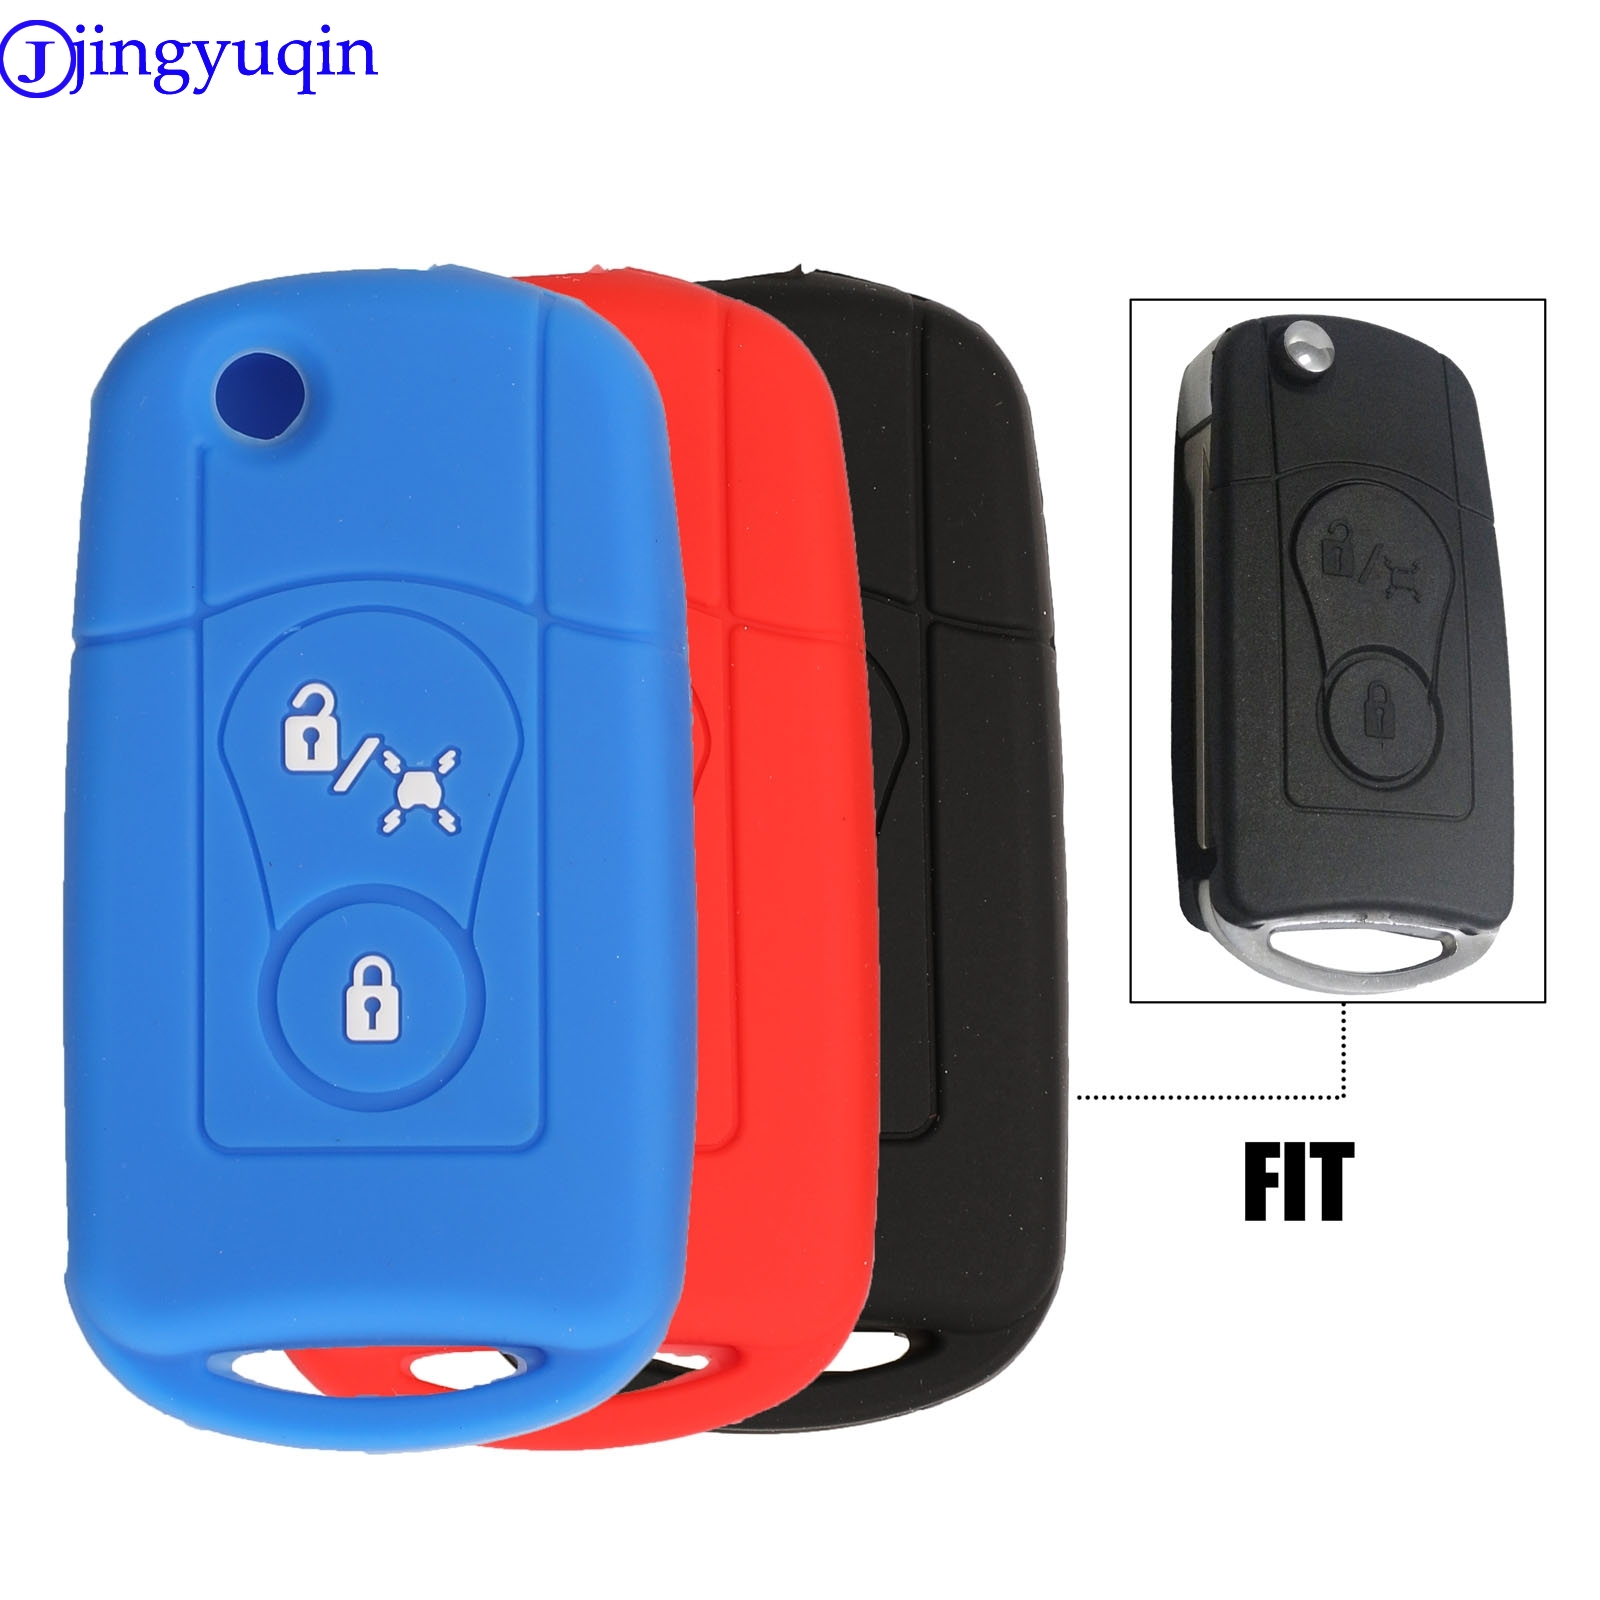 Jingyuqin 2B Remote Car Key Silicone Cover Case For Ssangyong Actyon SUV Kyron Holder Stylingb Filding Key